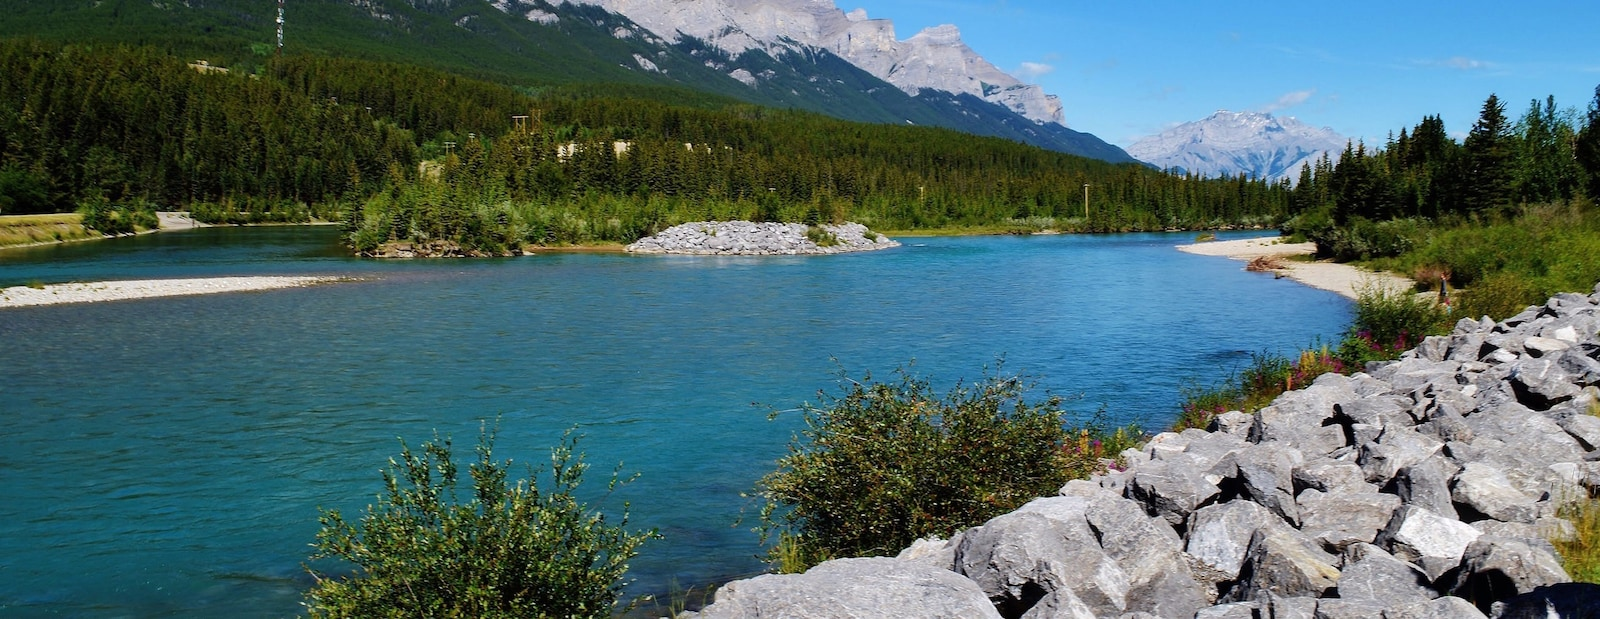 Vacation rentals in Kananaskis